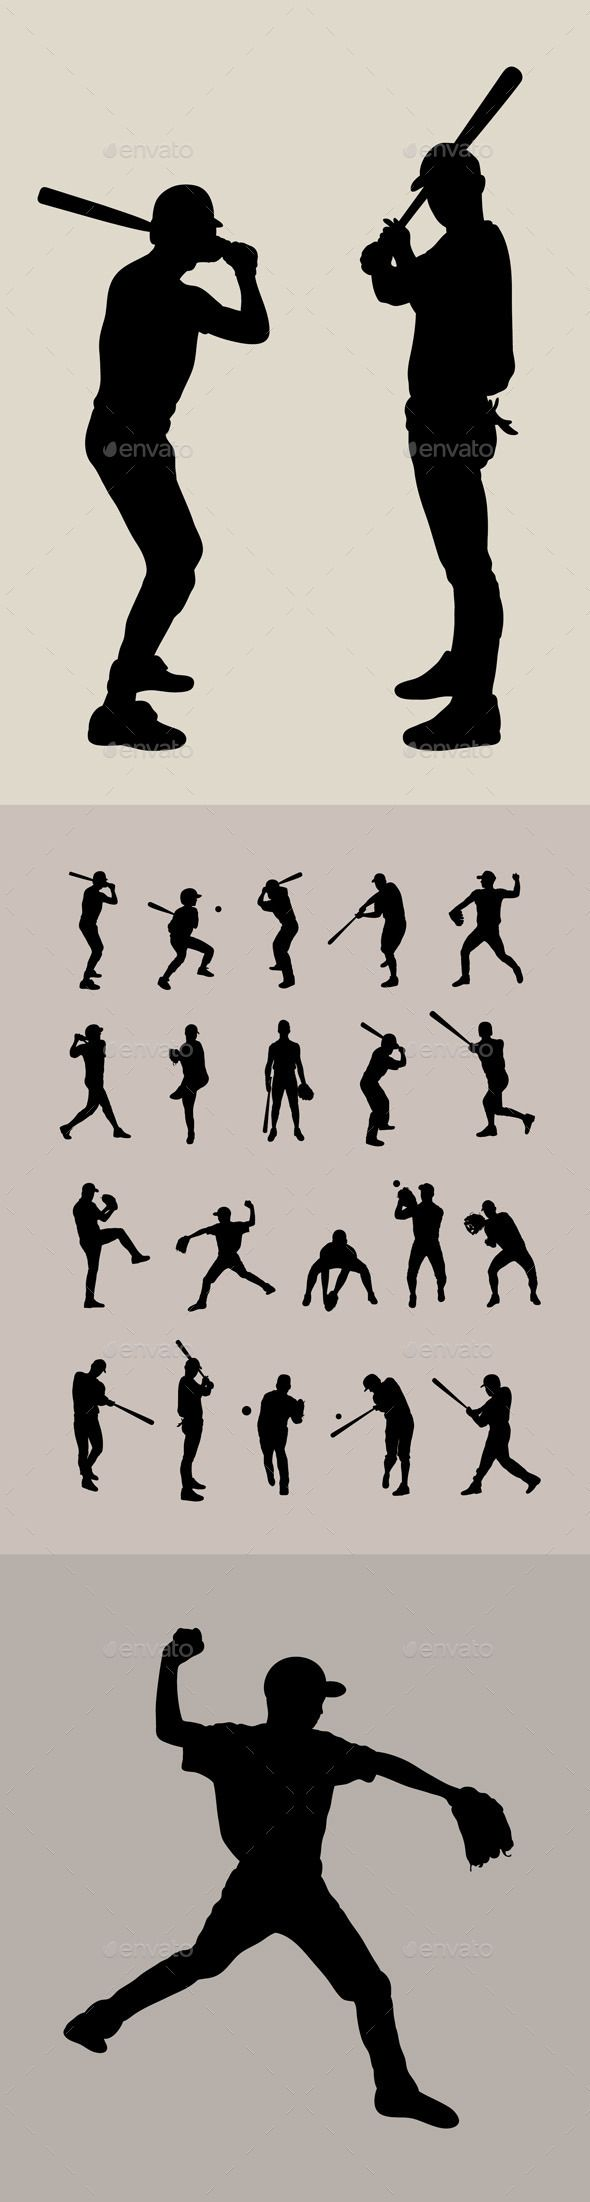 #Baseball Silhouette - #Sports / #Activity #Conceptual #silhouettes #people #characters #isolated #illustration #vector #template